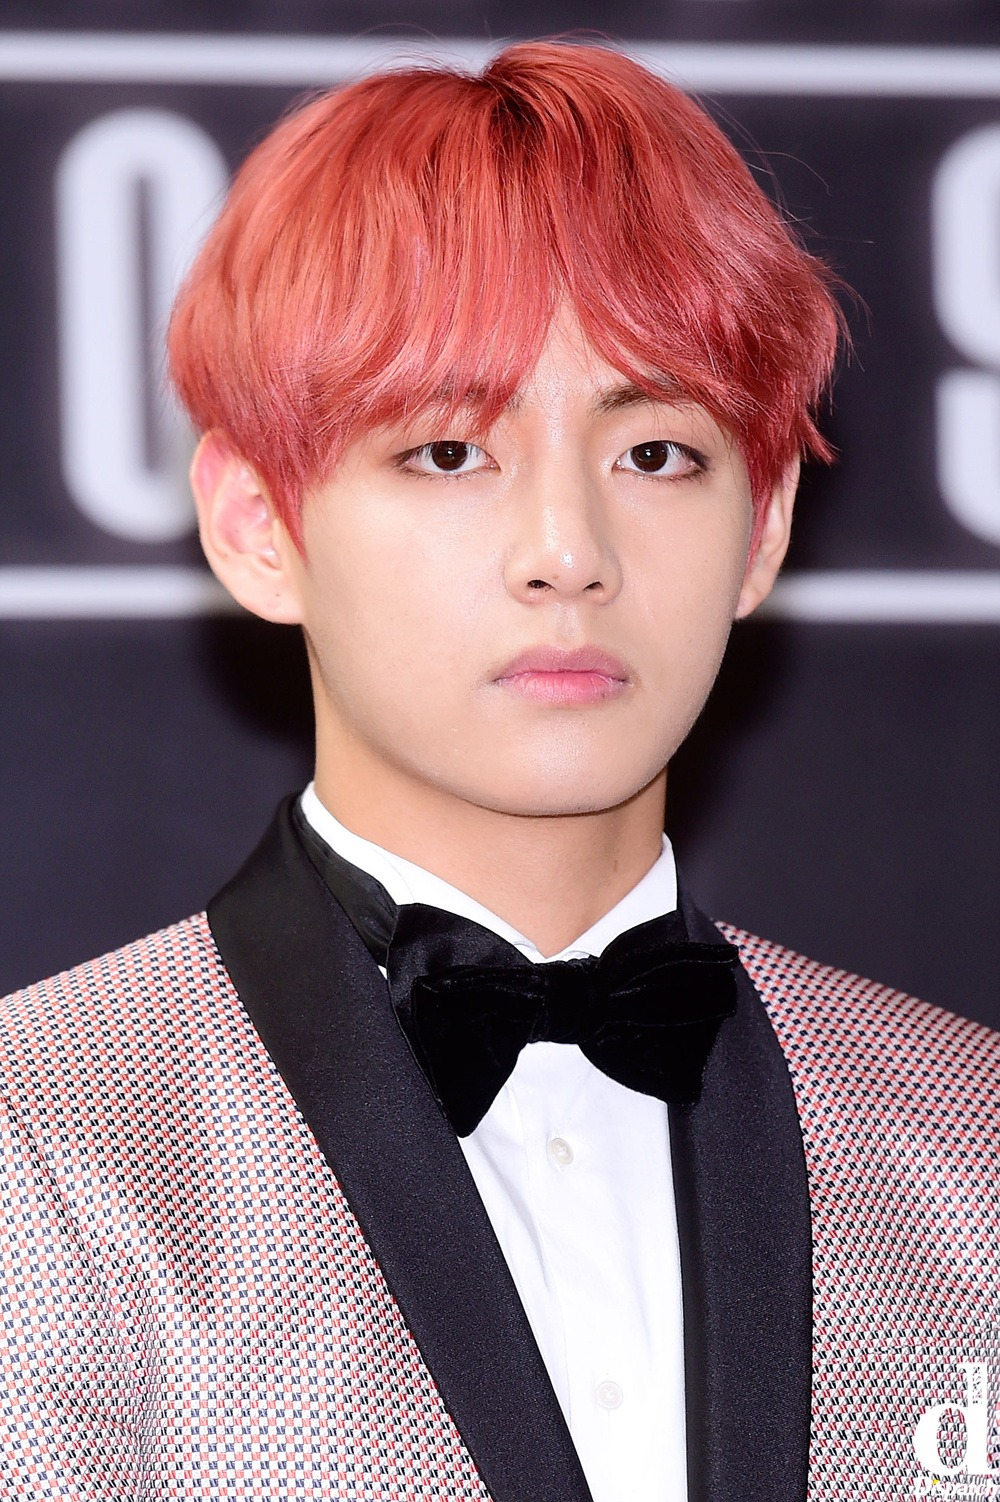 12 Of Bts V S Most Iconic Outfits That Prove He Deserves